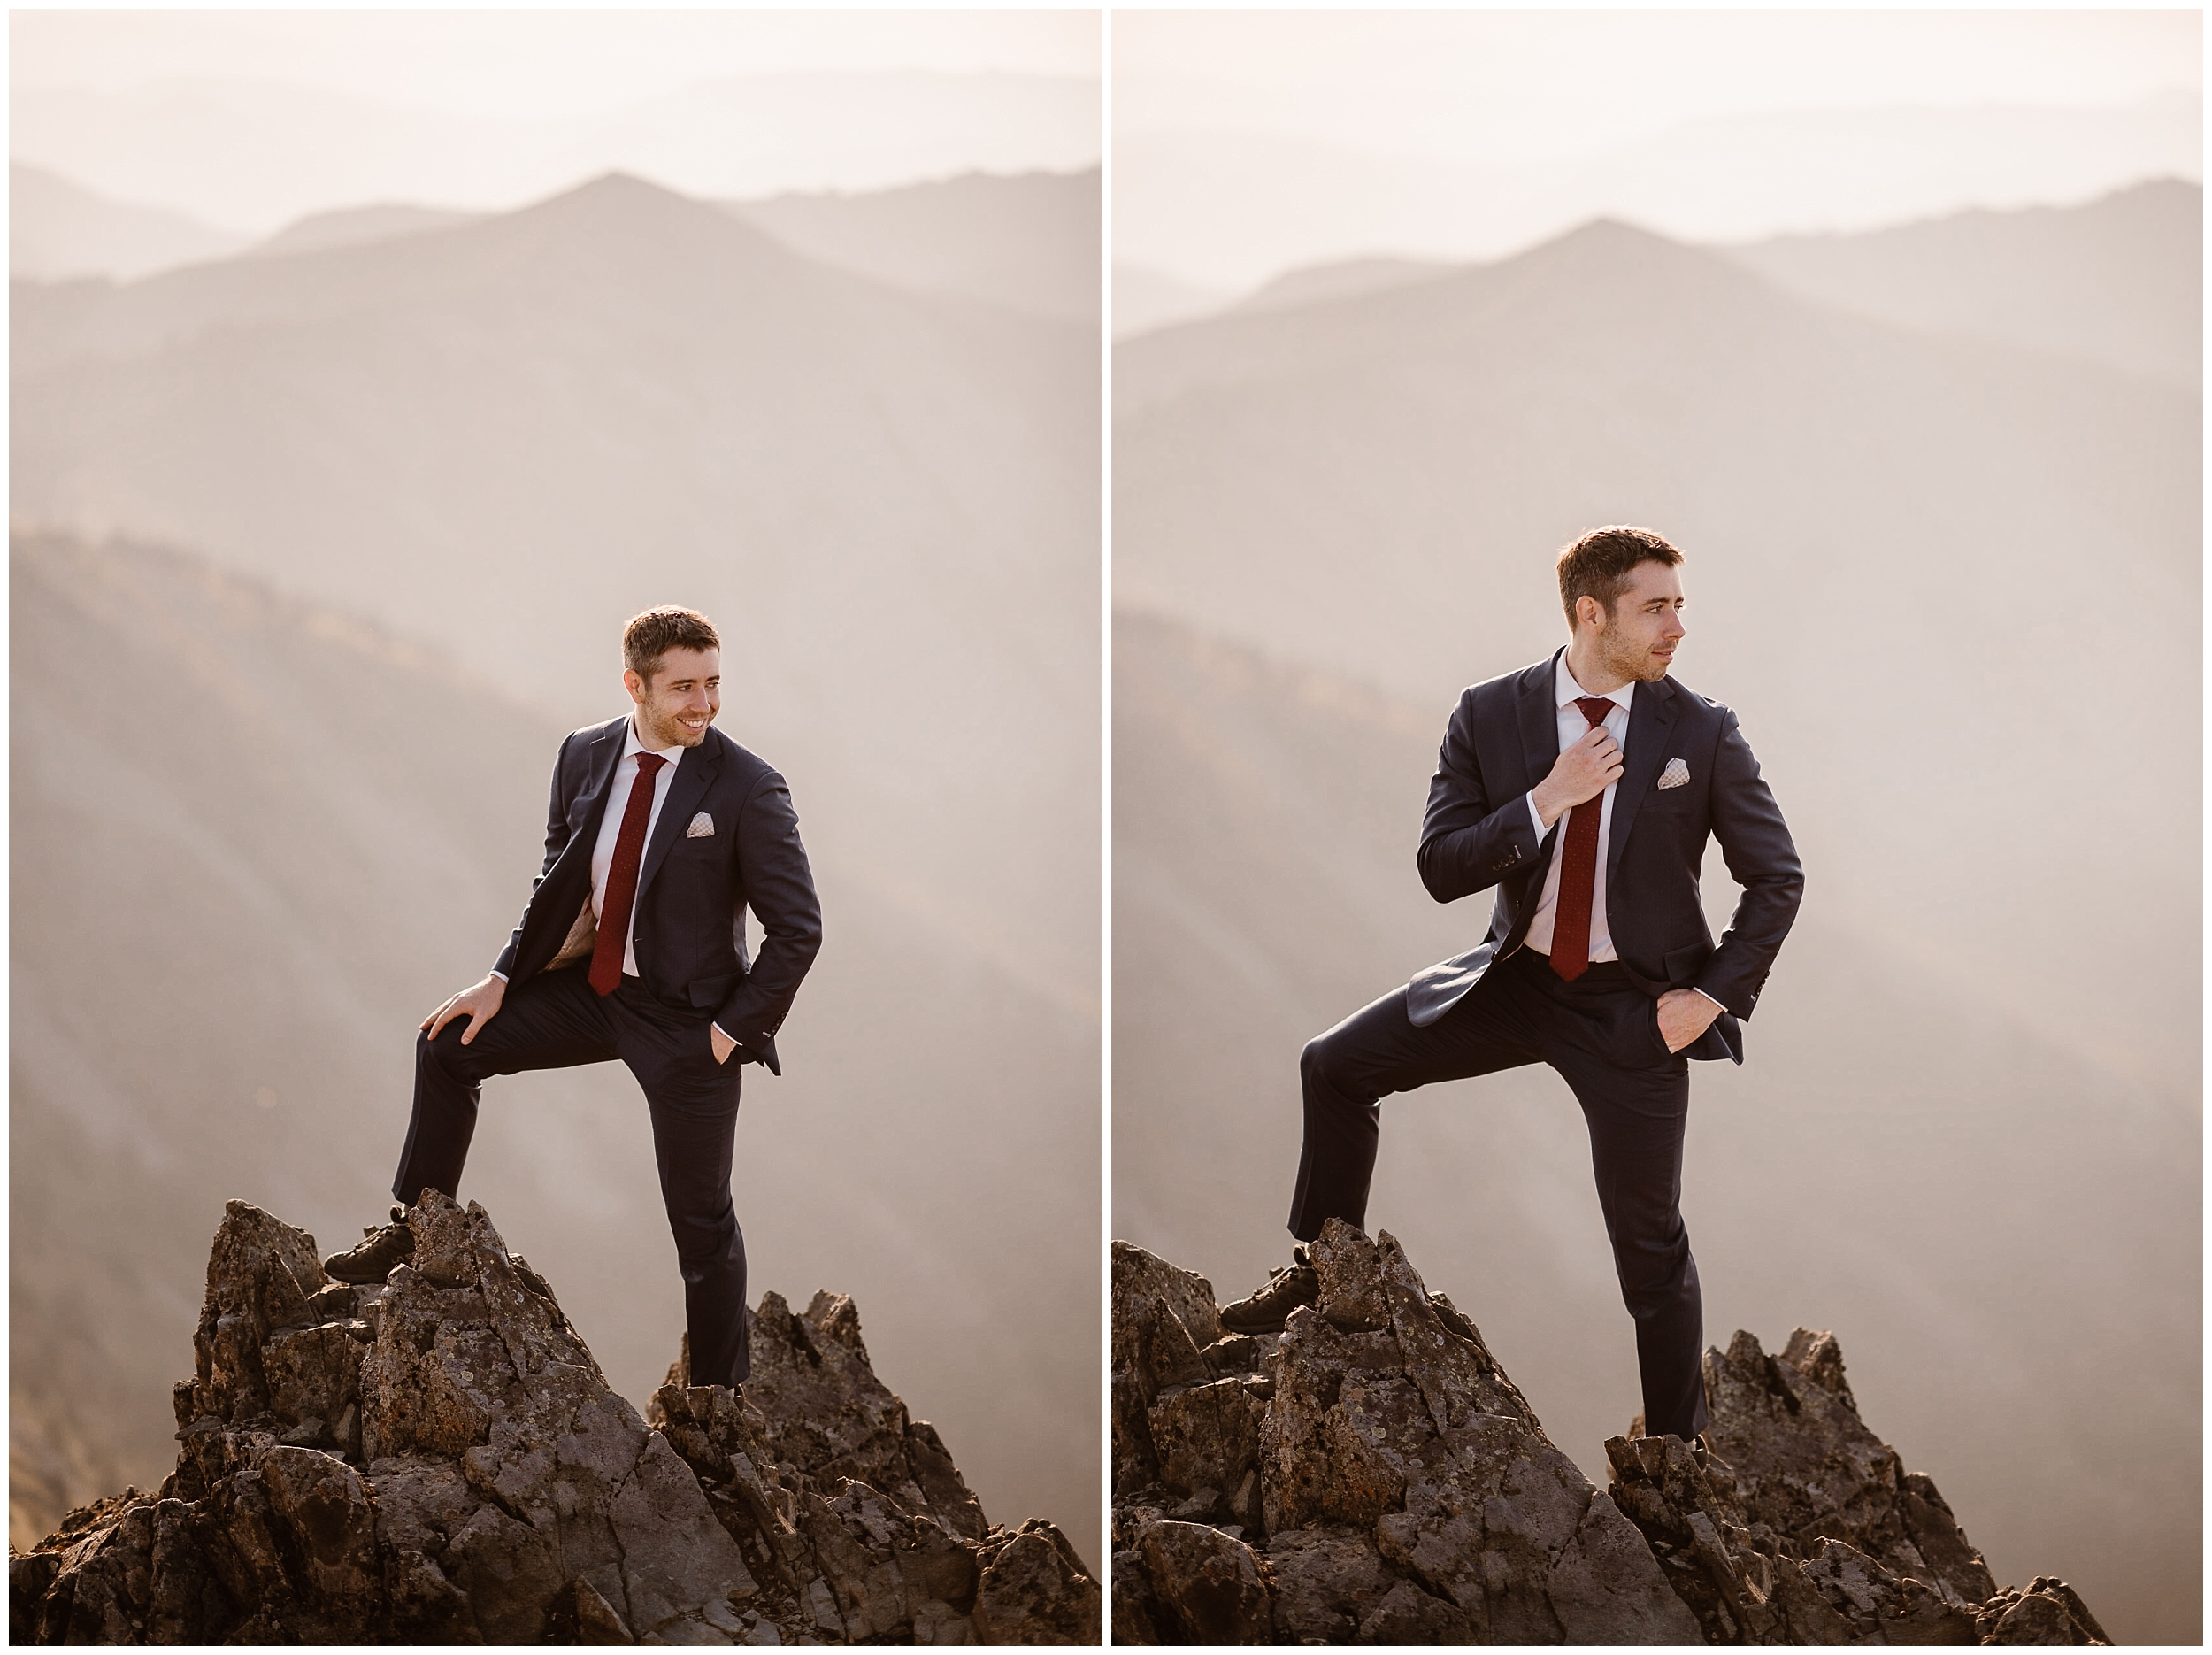 David, the groom, poses at the top of the mountain for portrait style elopement pictures captured by elopement wedding photographer Adventure Instead.